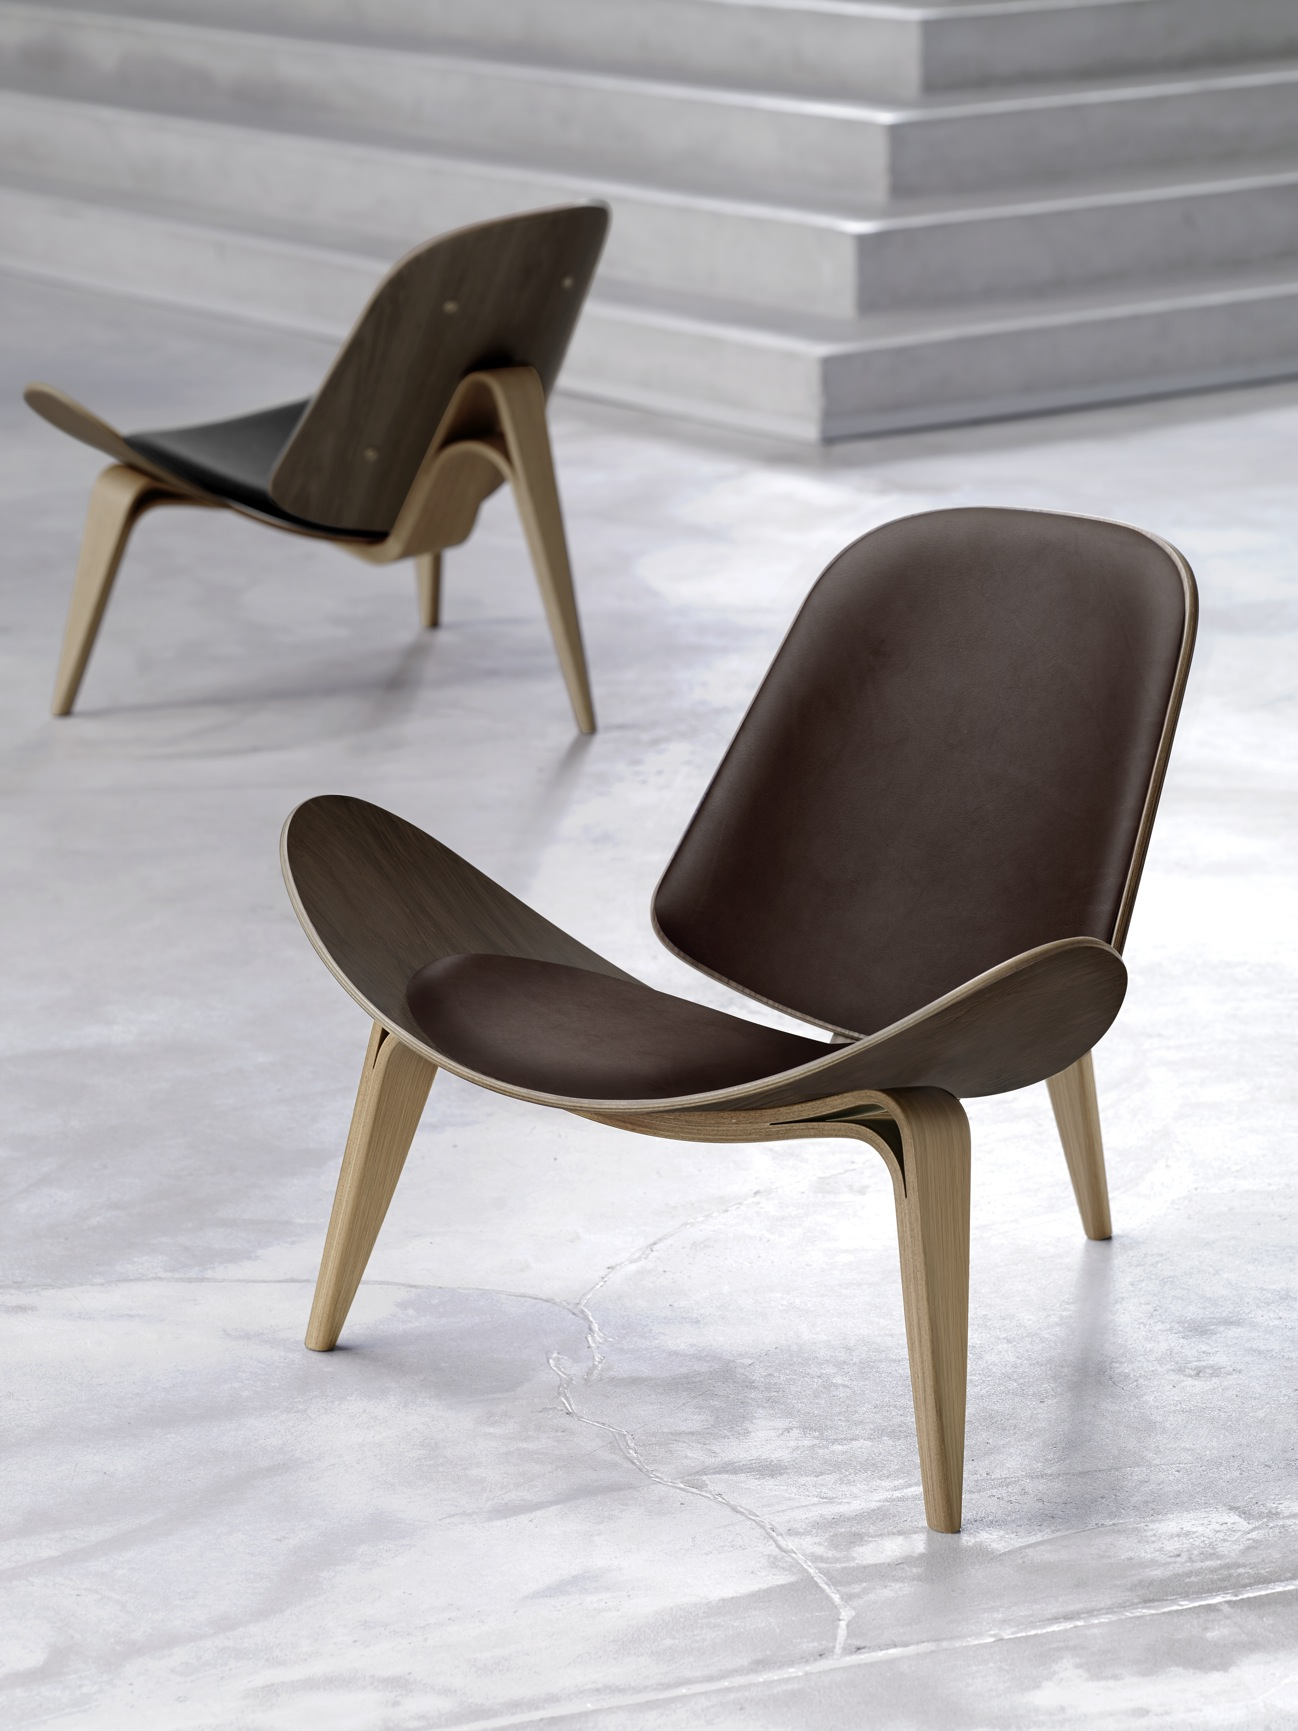 Hans wegner shell chairs - The Ch07 Also Known As Shell Chair And Tripod Is One Of The Most Original Chairs Designed By Hans Wegner Created In 1963 The Ch07 Chair Experienced